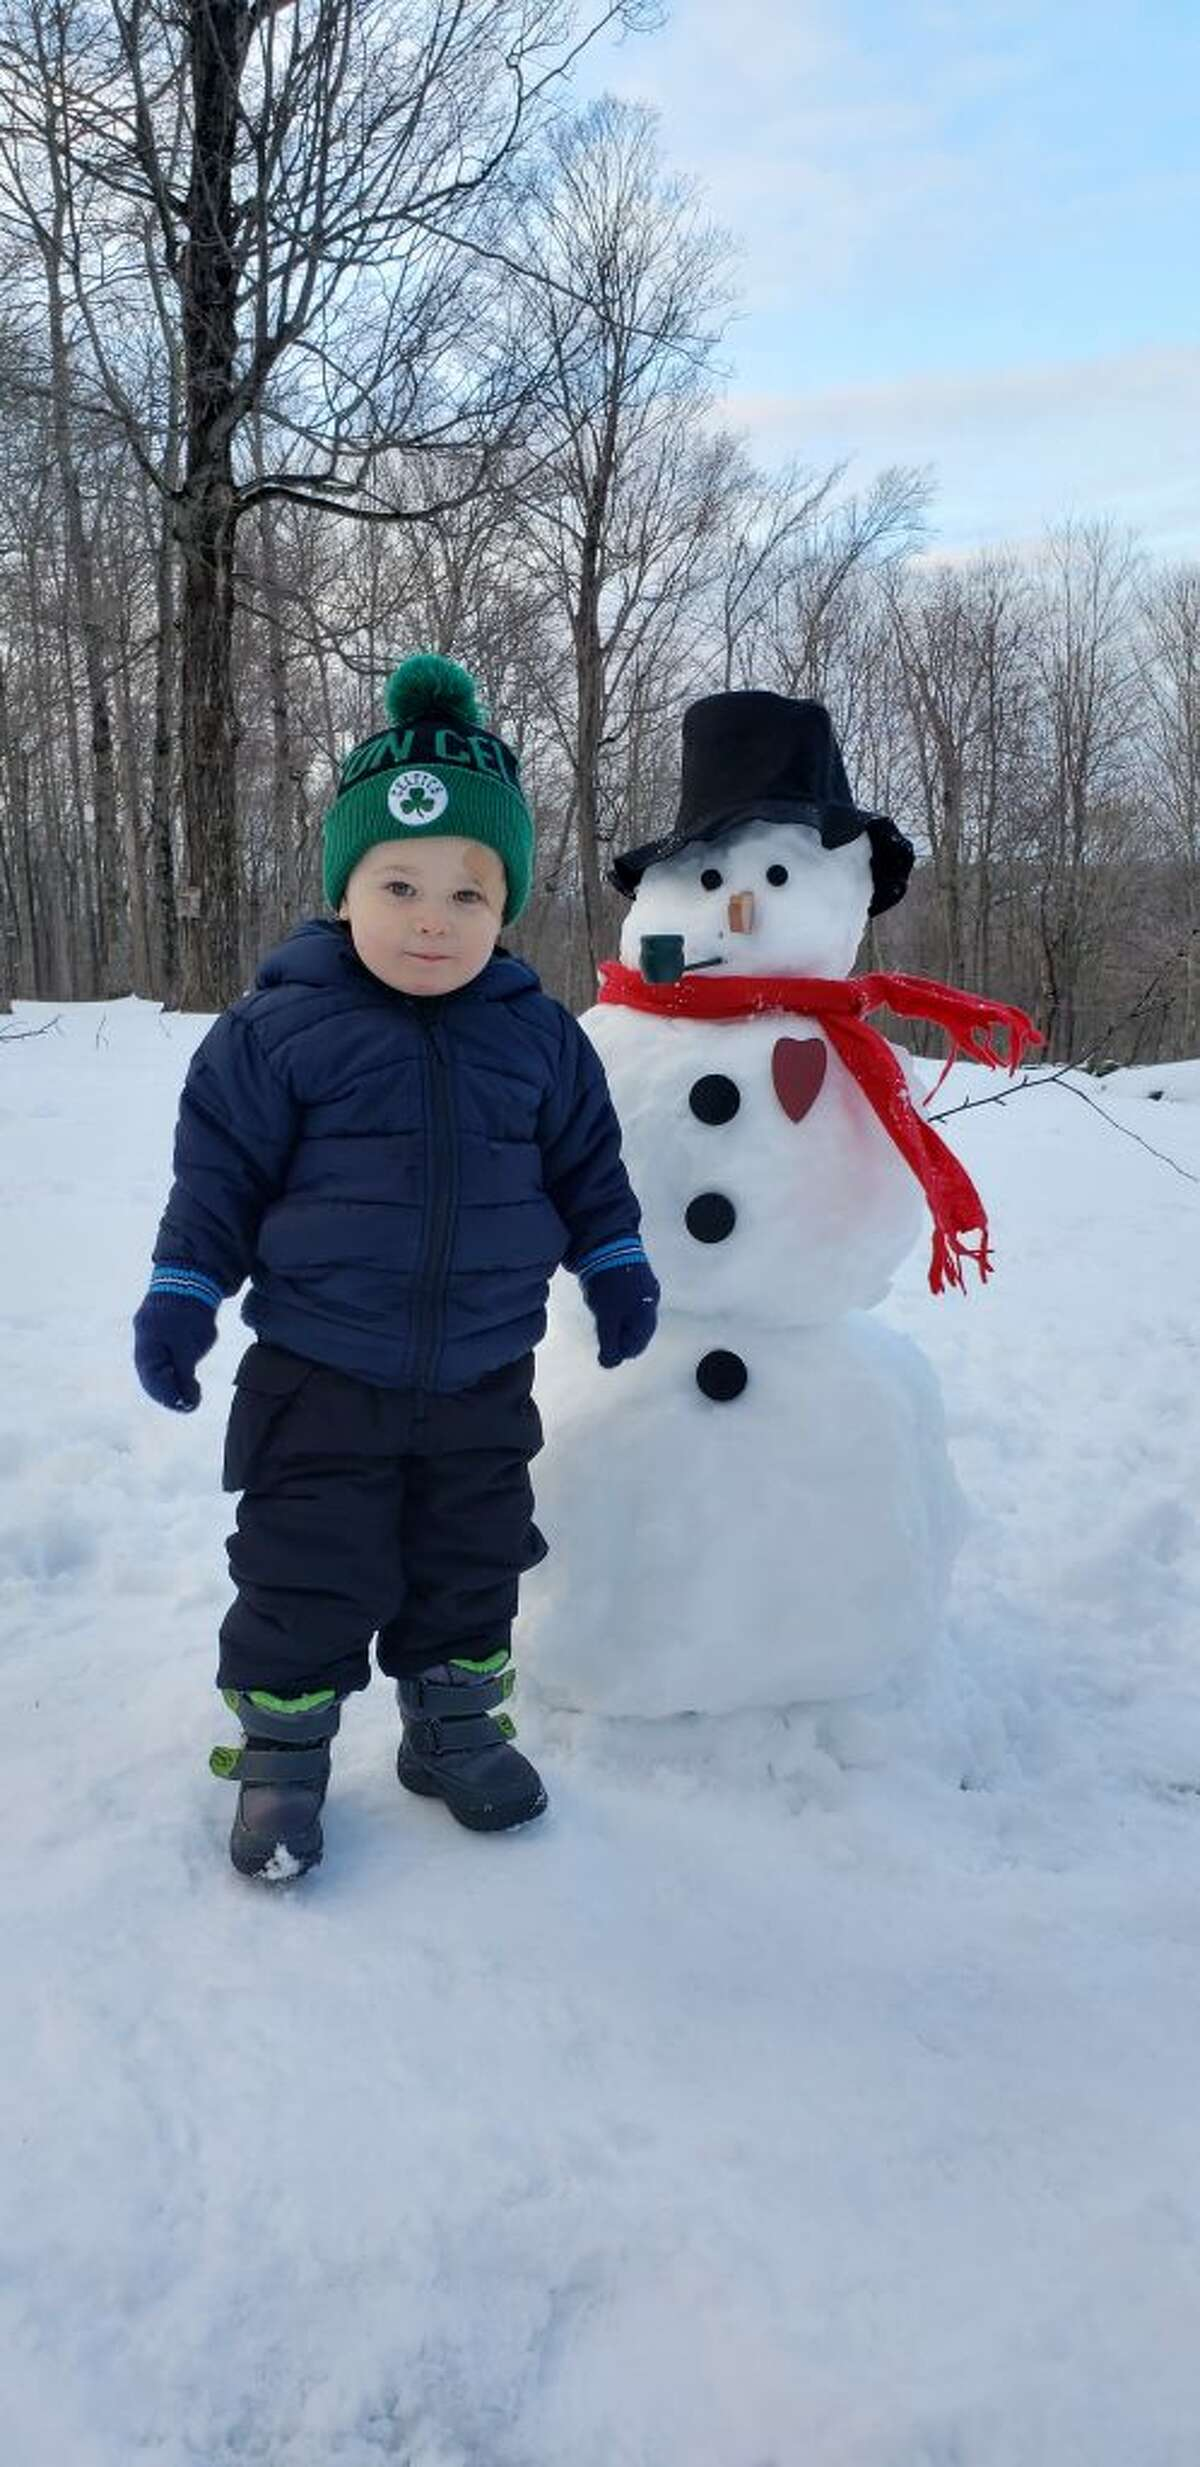 Jack Rowe, 2, and with his snowman friend.